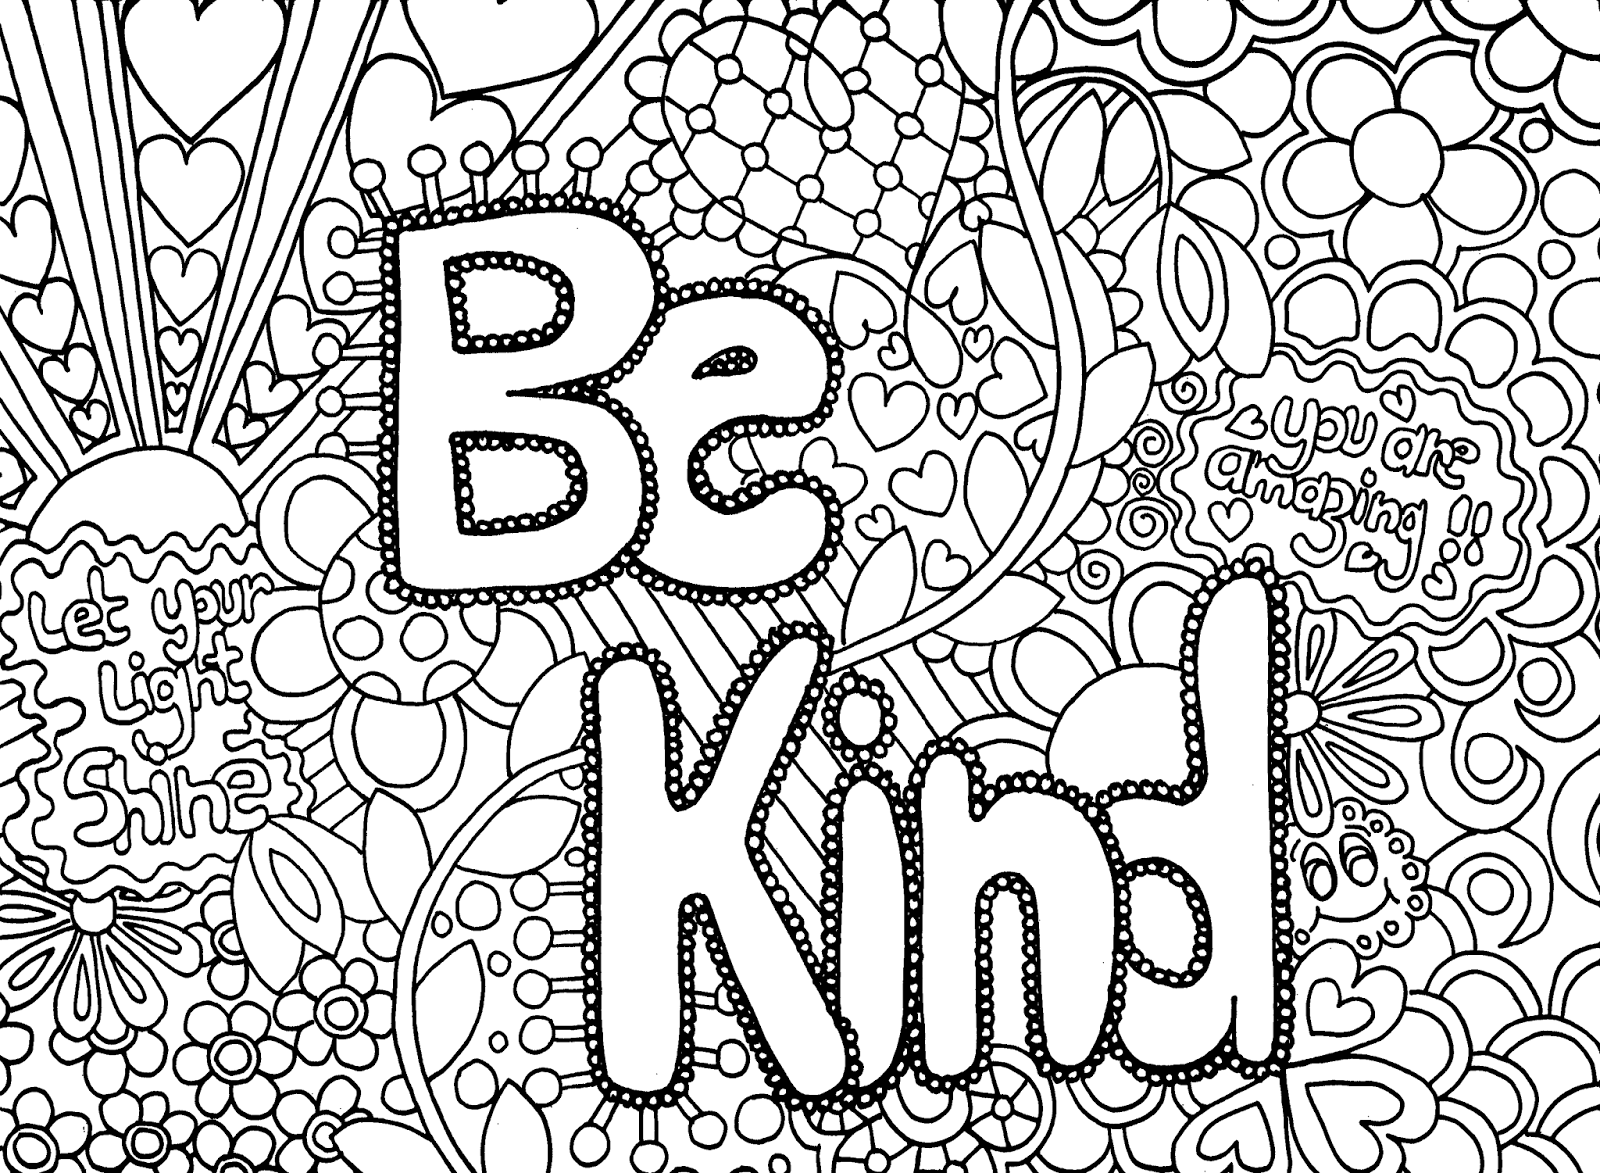 Coloring Pages Amusing Hard Coloring Pages For Adults  Best Coloring Pages For Kids Design Ideas